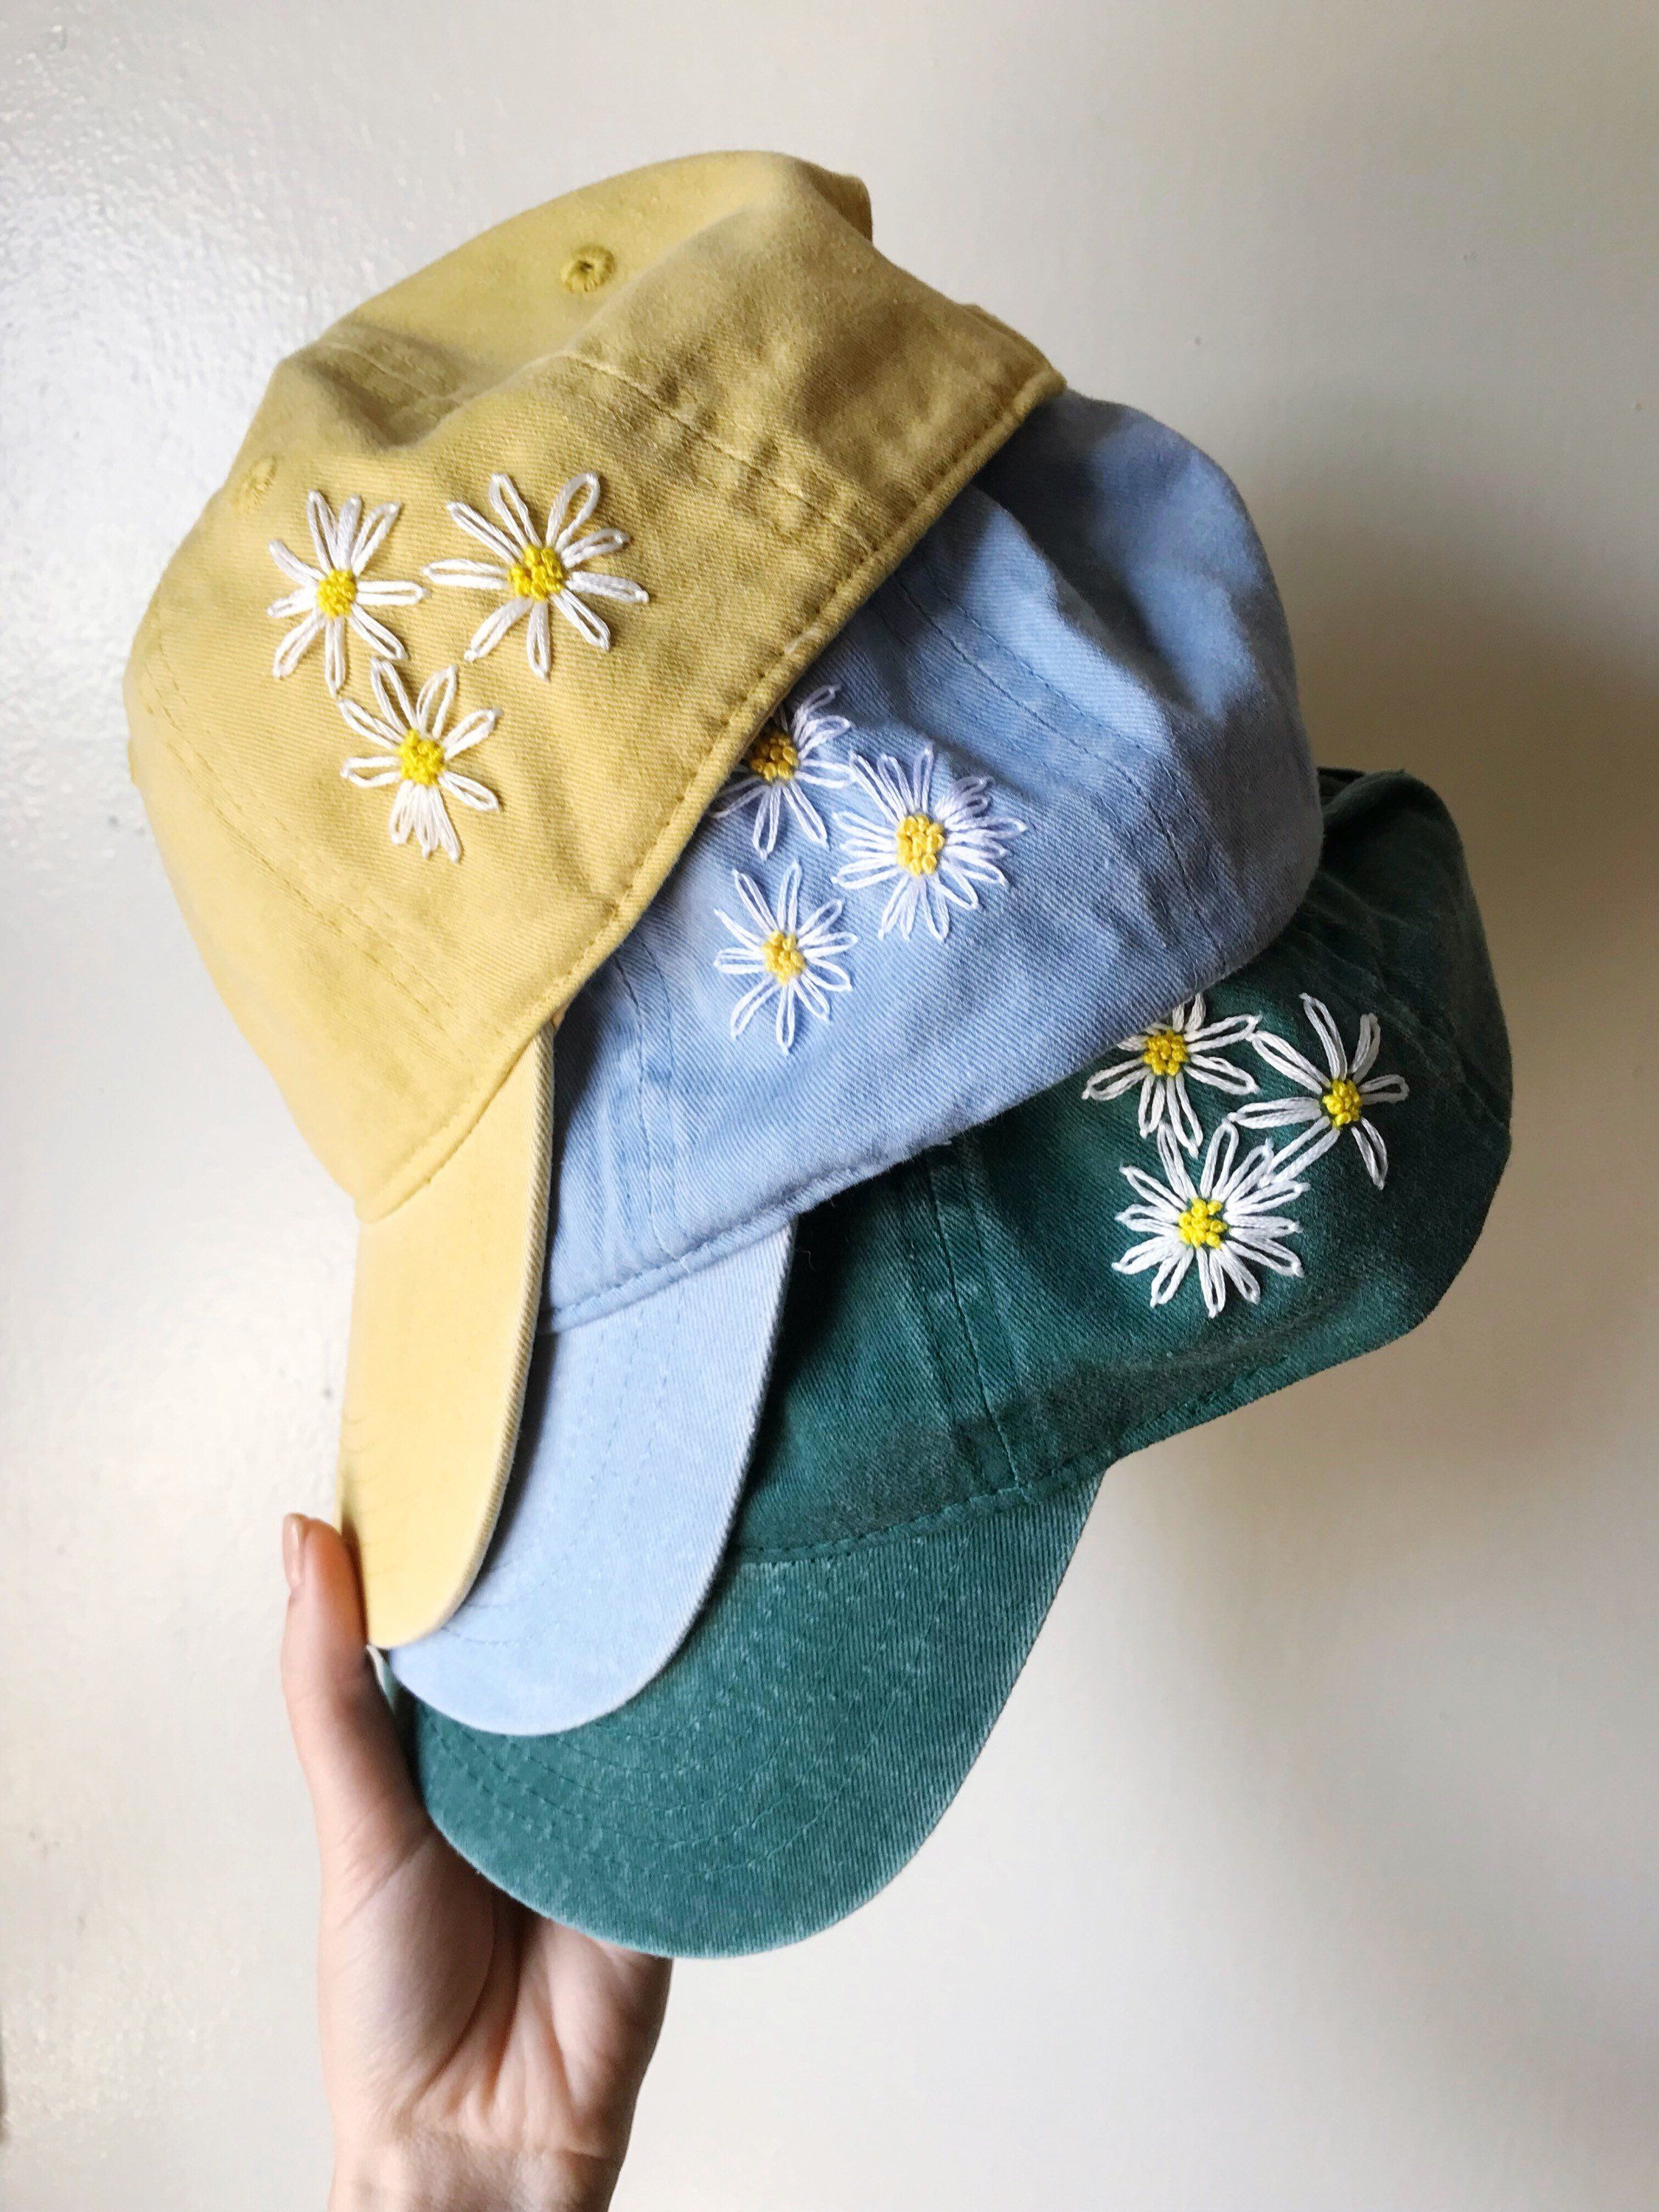 Floral Women's Baseball Cap  Hand Embroidered Flowers